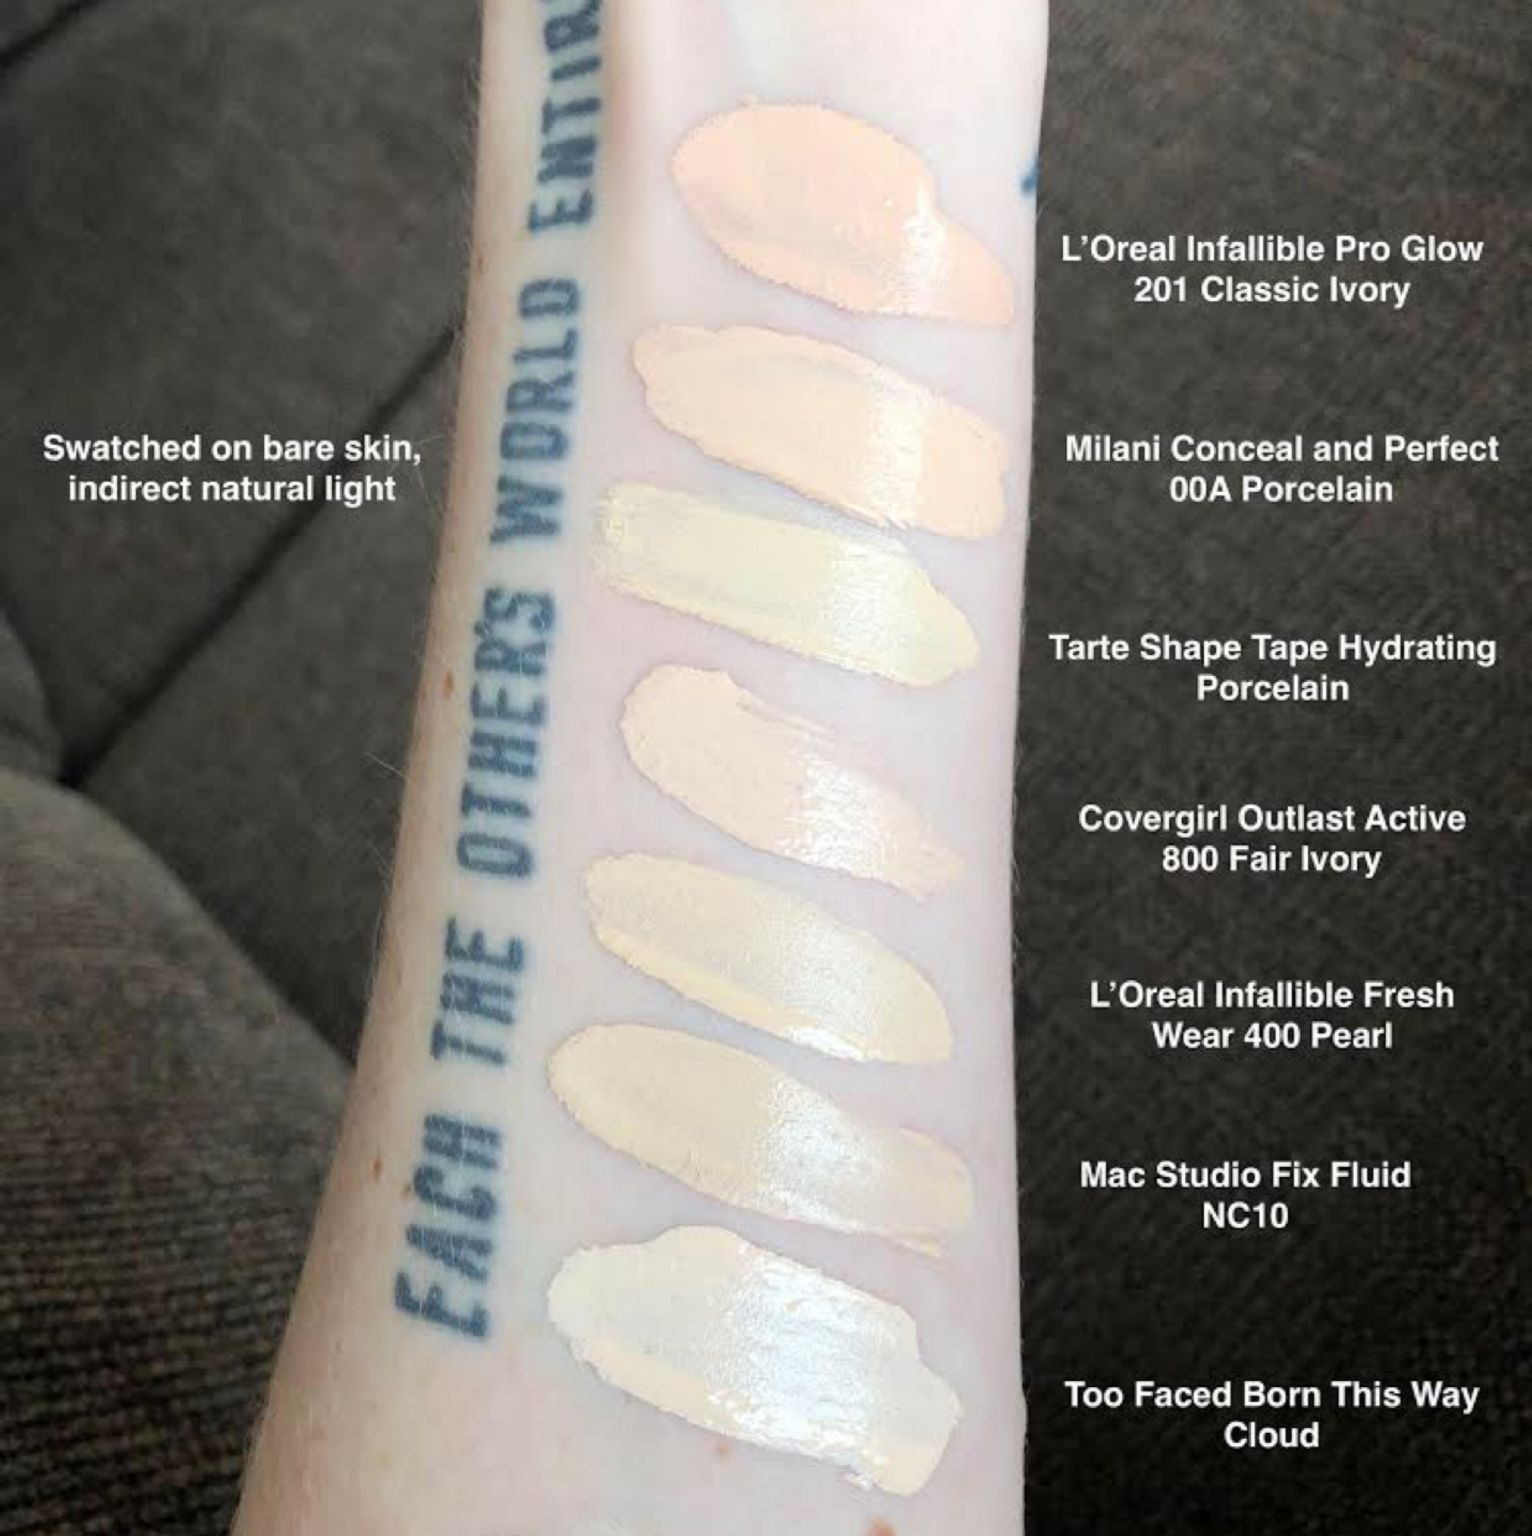 L Oreal Paris Infallible Pro Glow 24hr Foundation Reviews Photos Ingredients Makeupalley